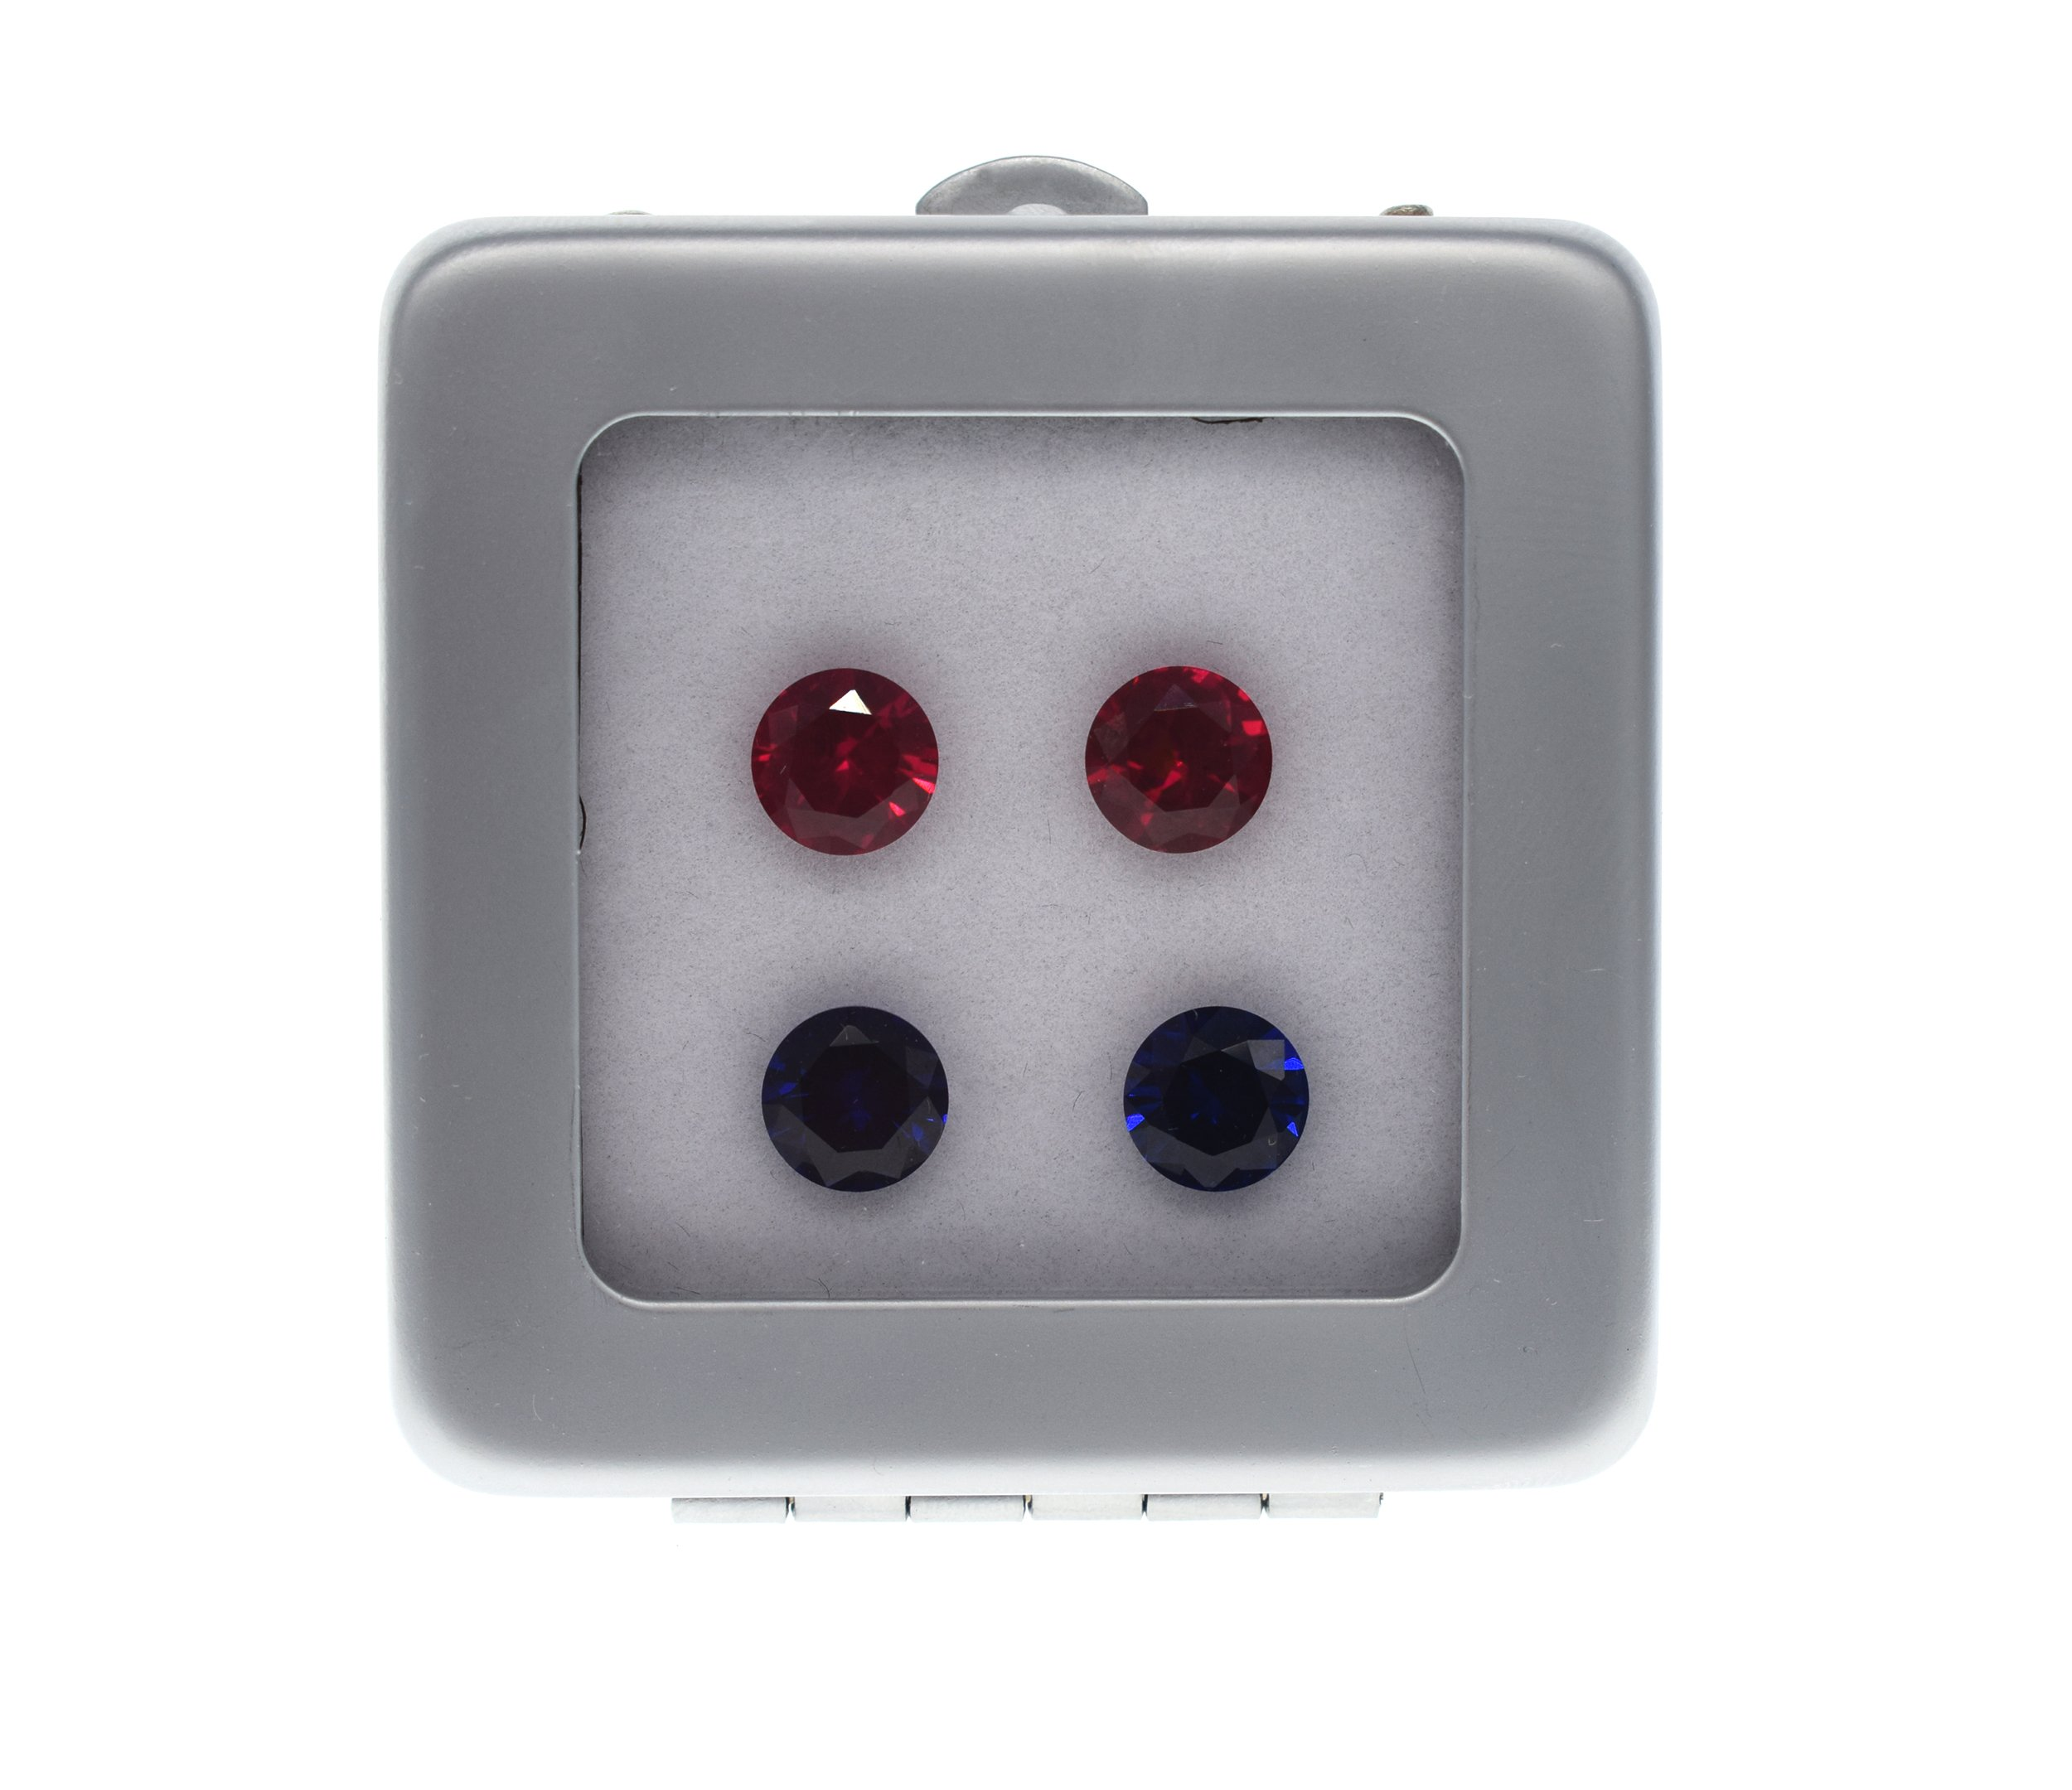 Lab created Eur-machine-cut clearly Synthetic ruby sapphire loose gemstones 4pcs 8mm High-end metal box mixed pack